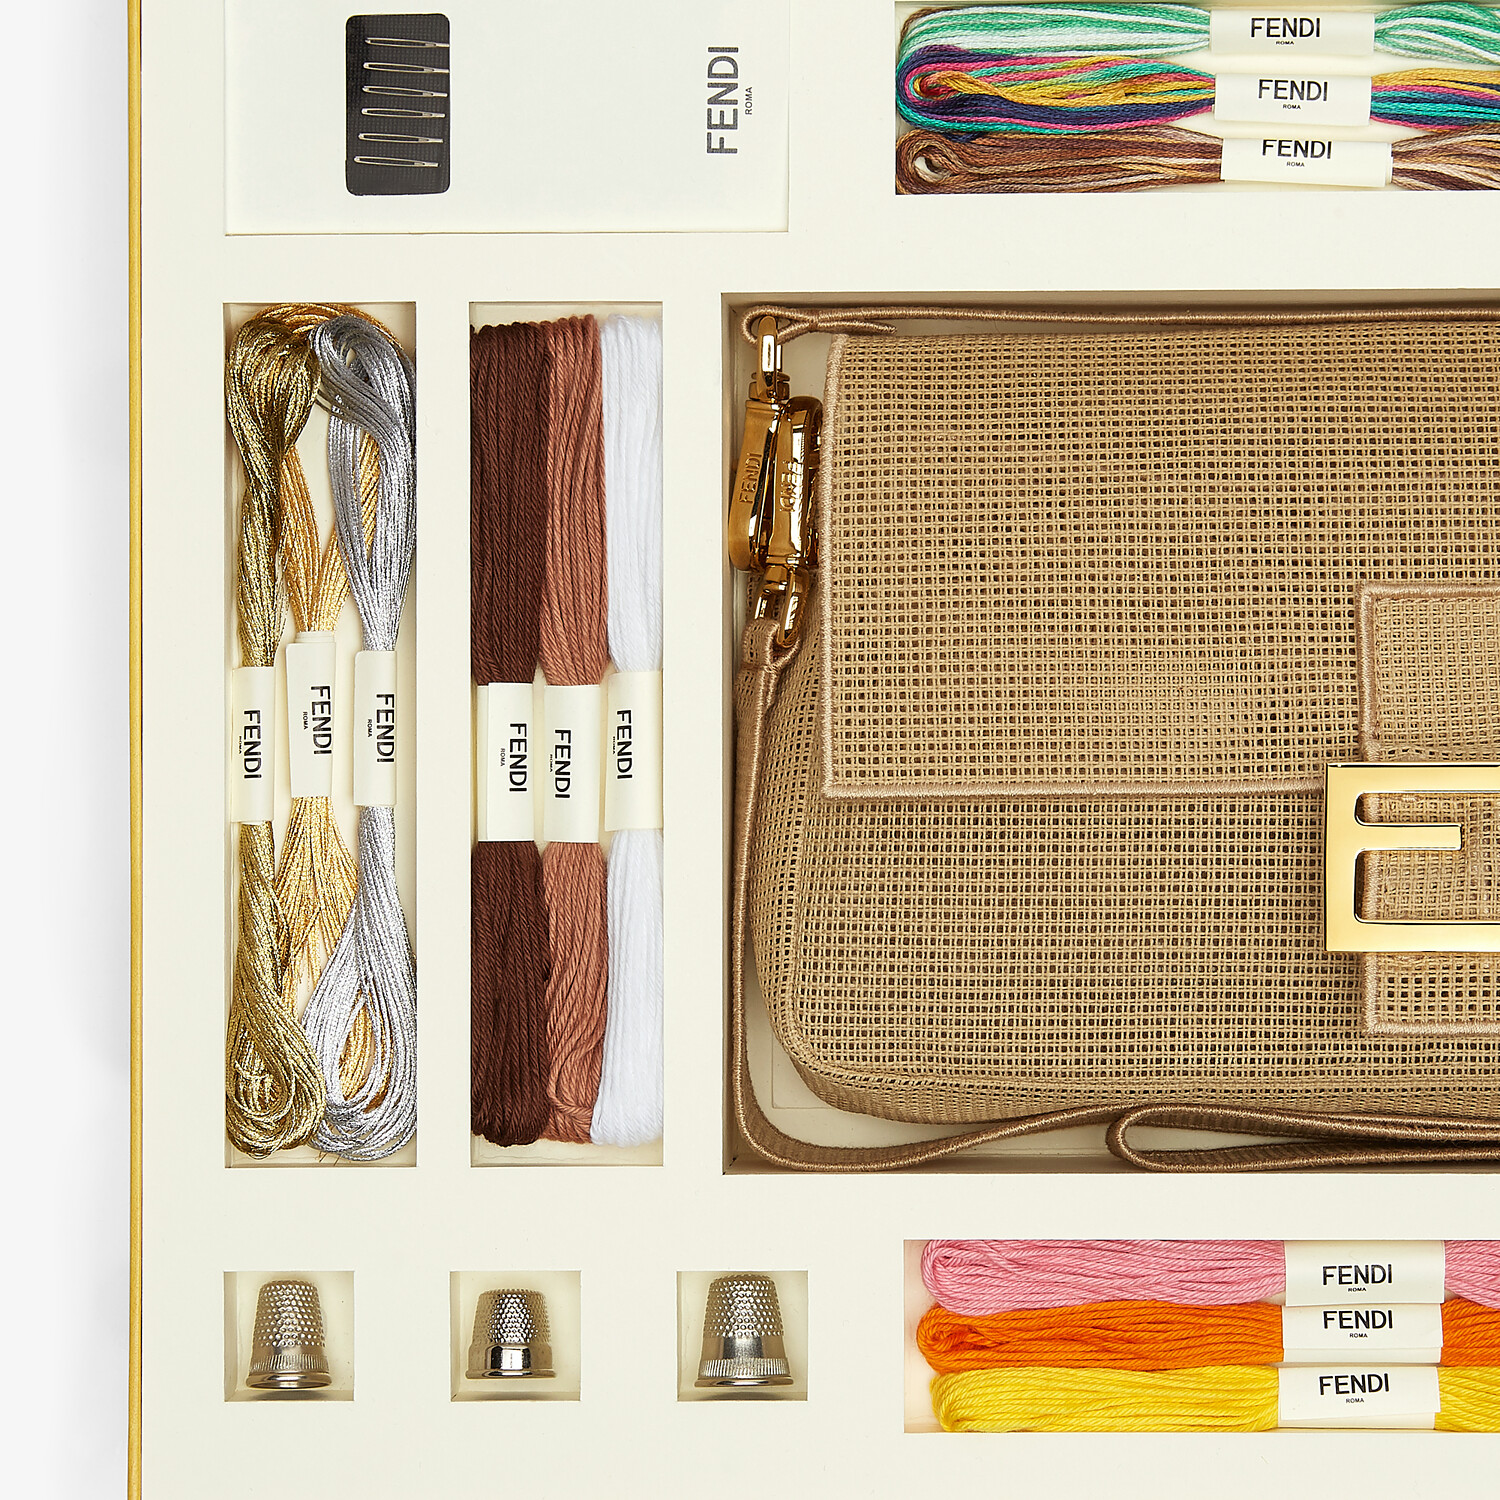 FENDI BAGUETTE - Bag with embroidery kit for adding a personal touch - view 2 detail